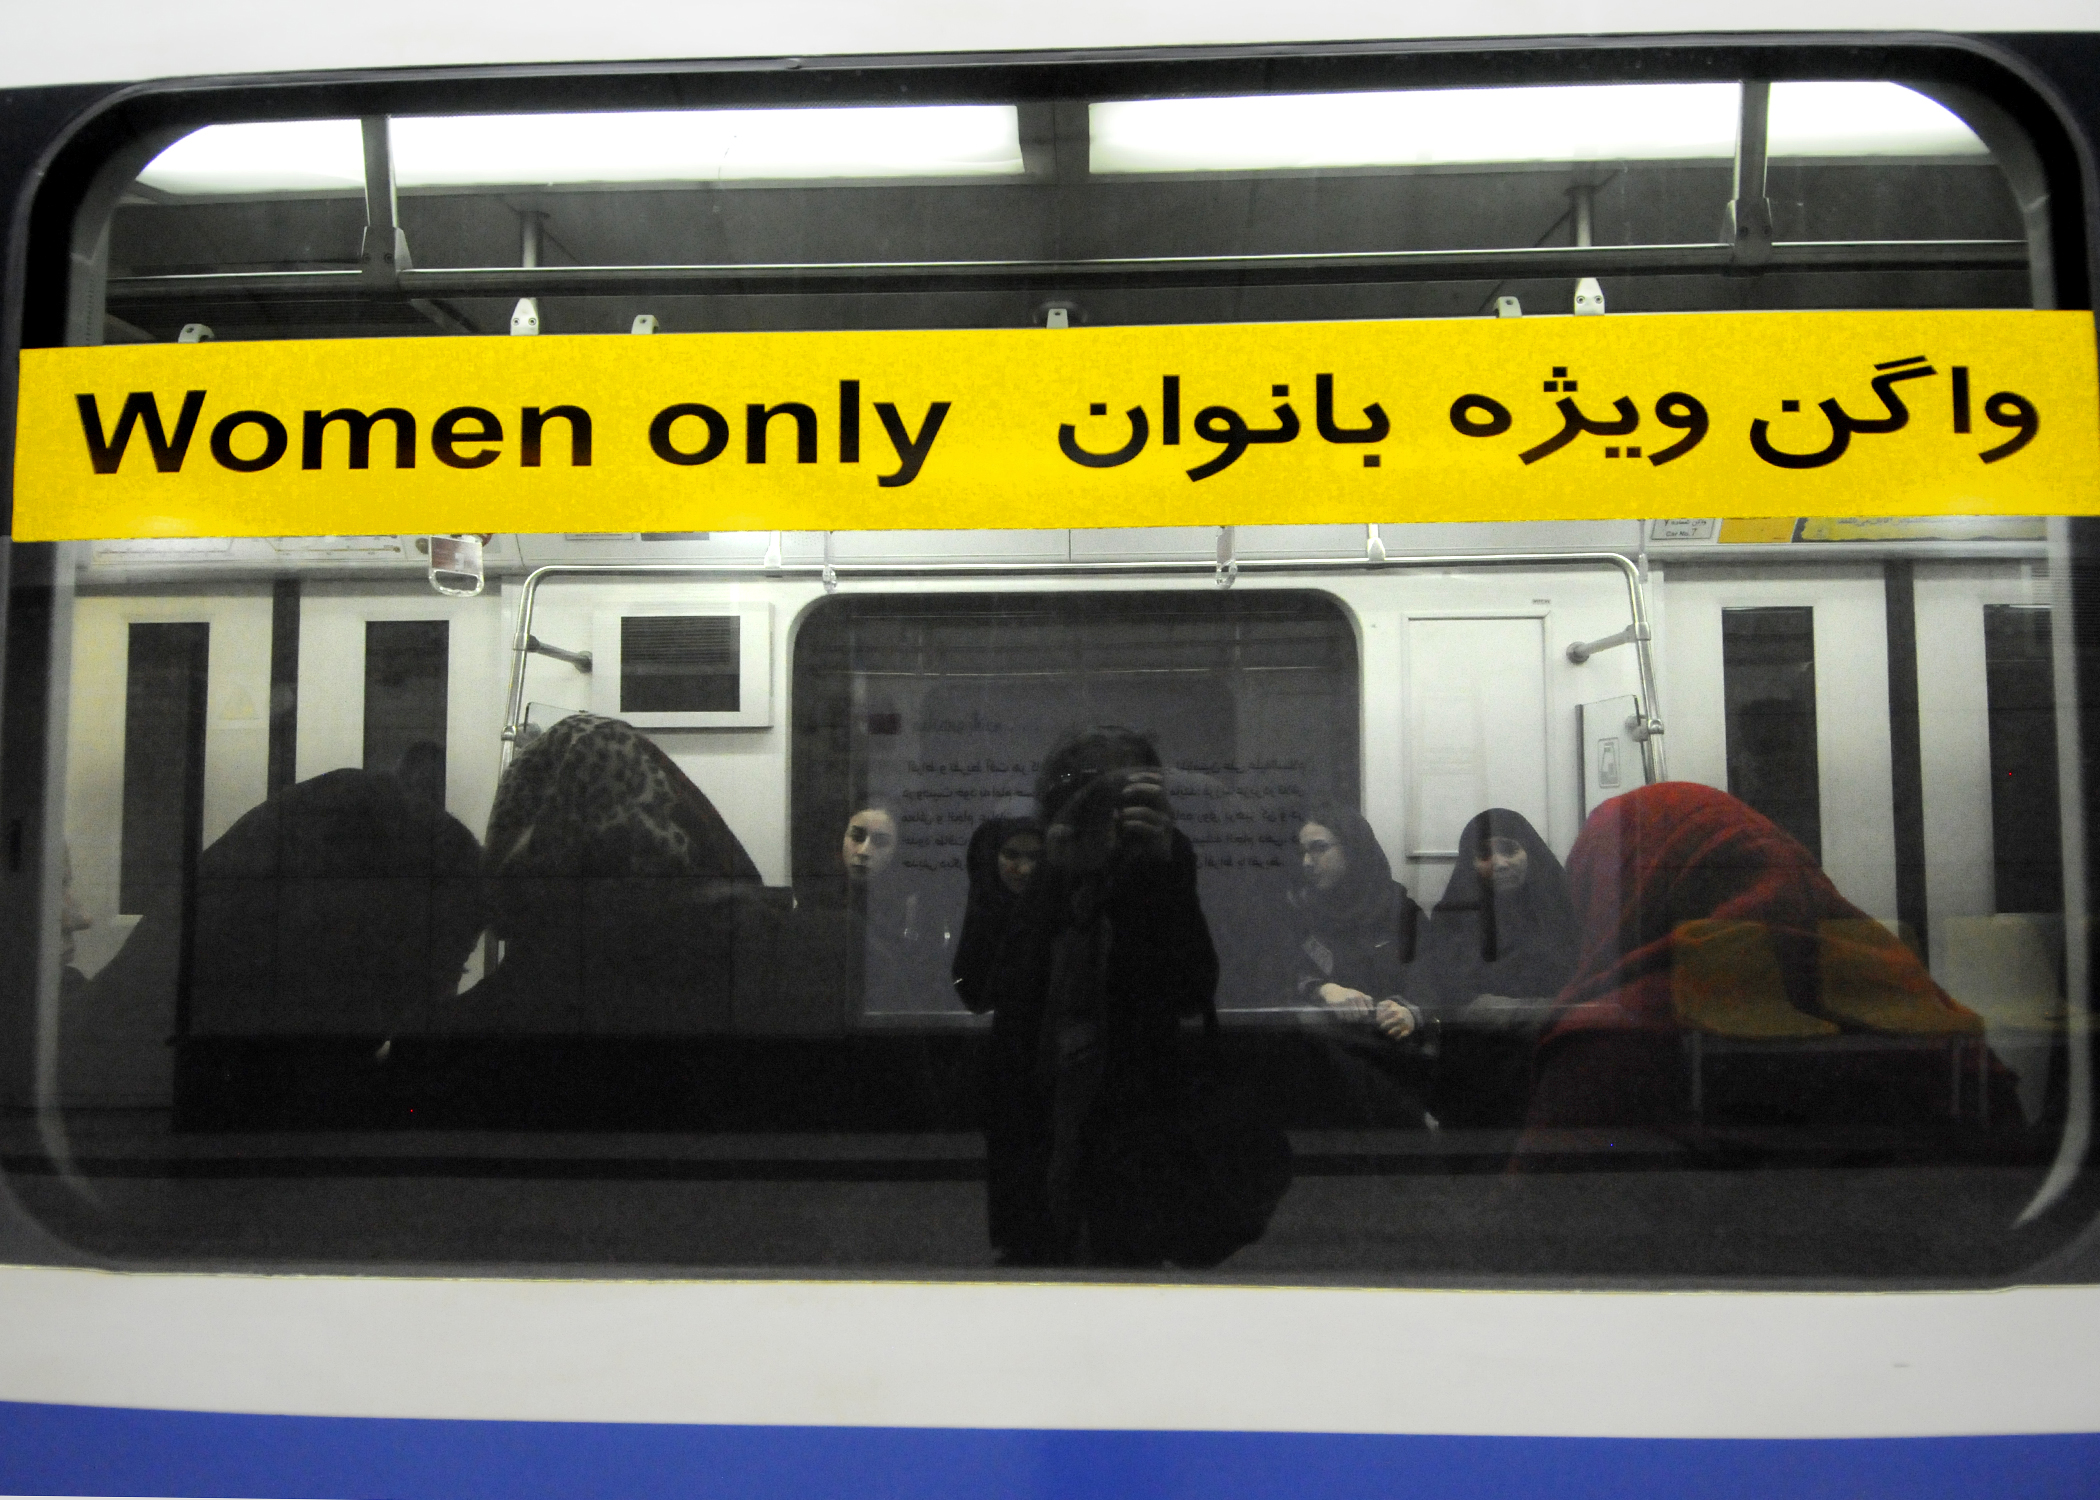 Metro_WomenOnly_Iran2306.jpg